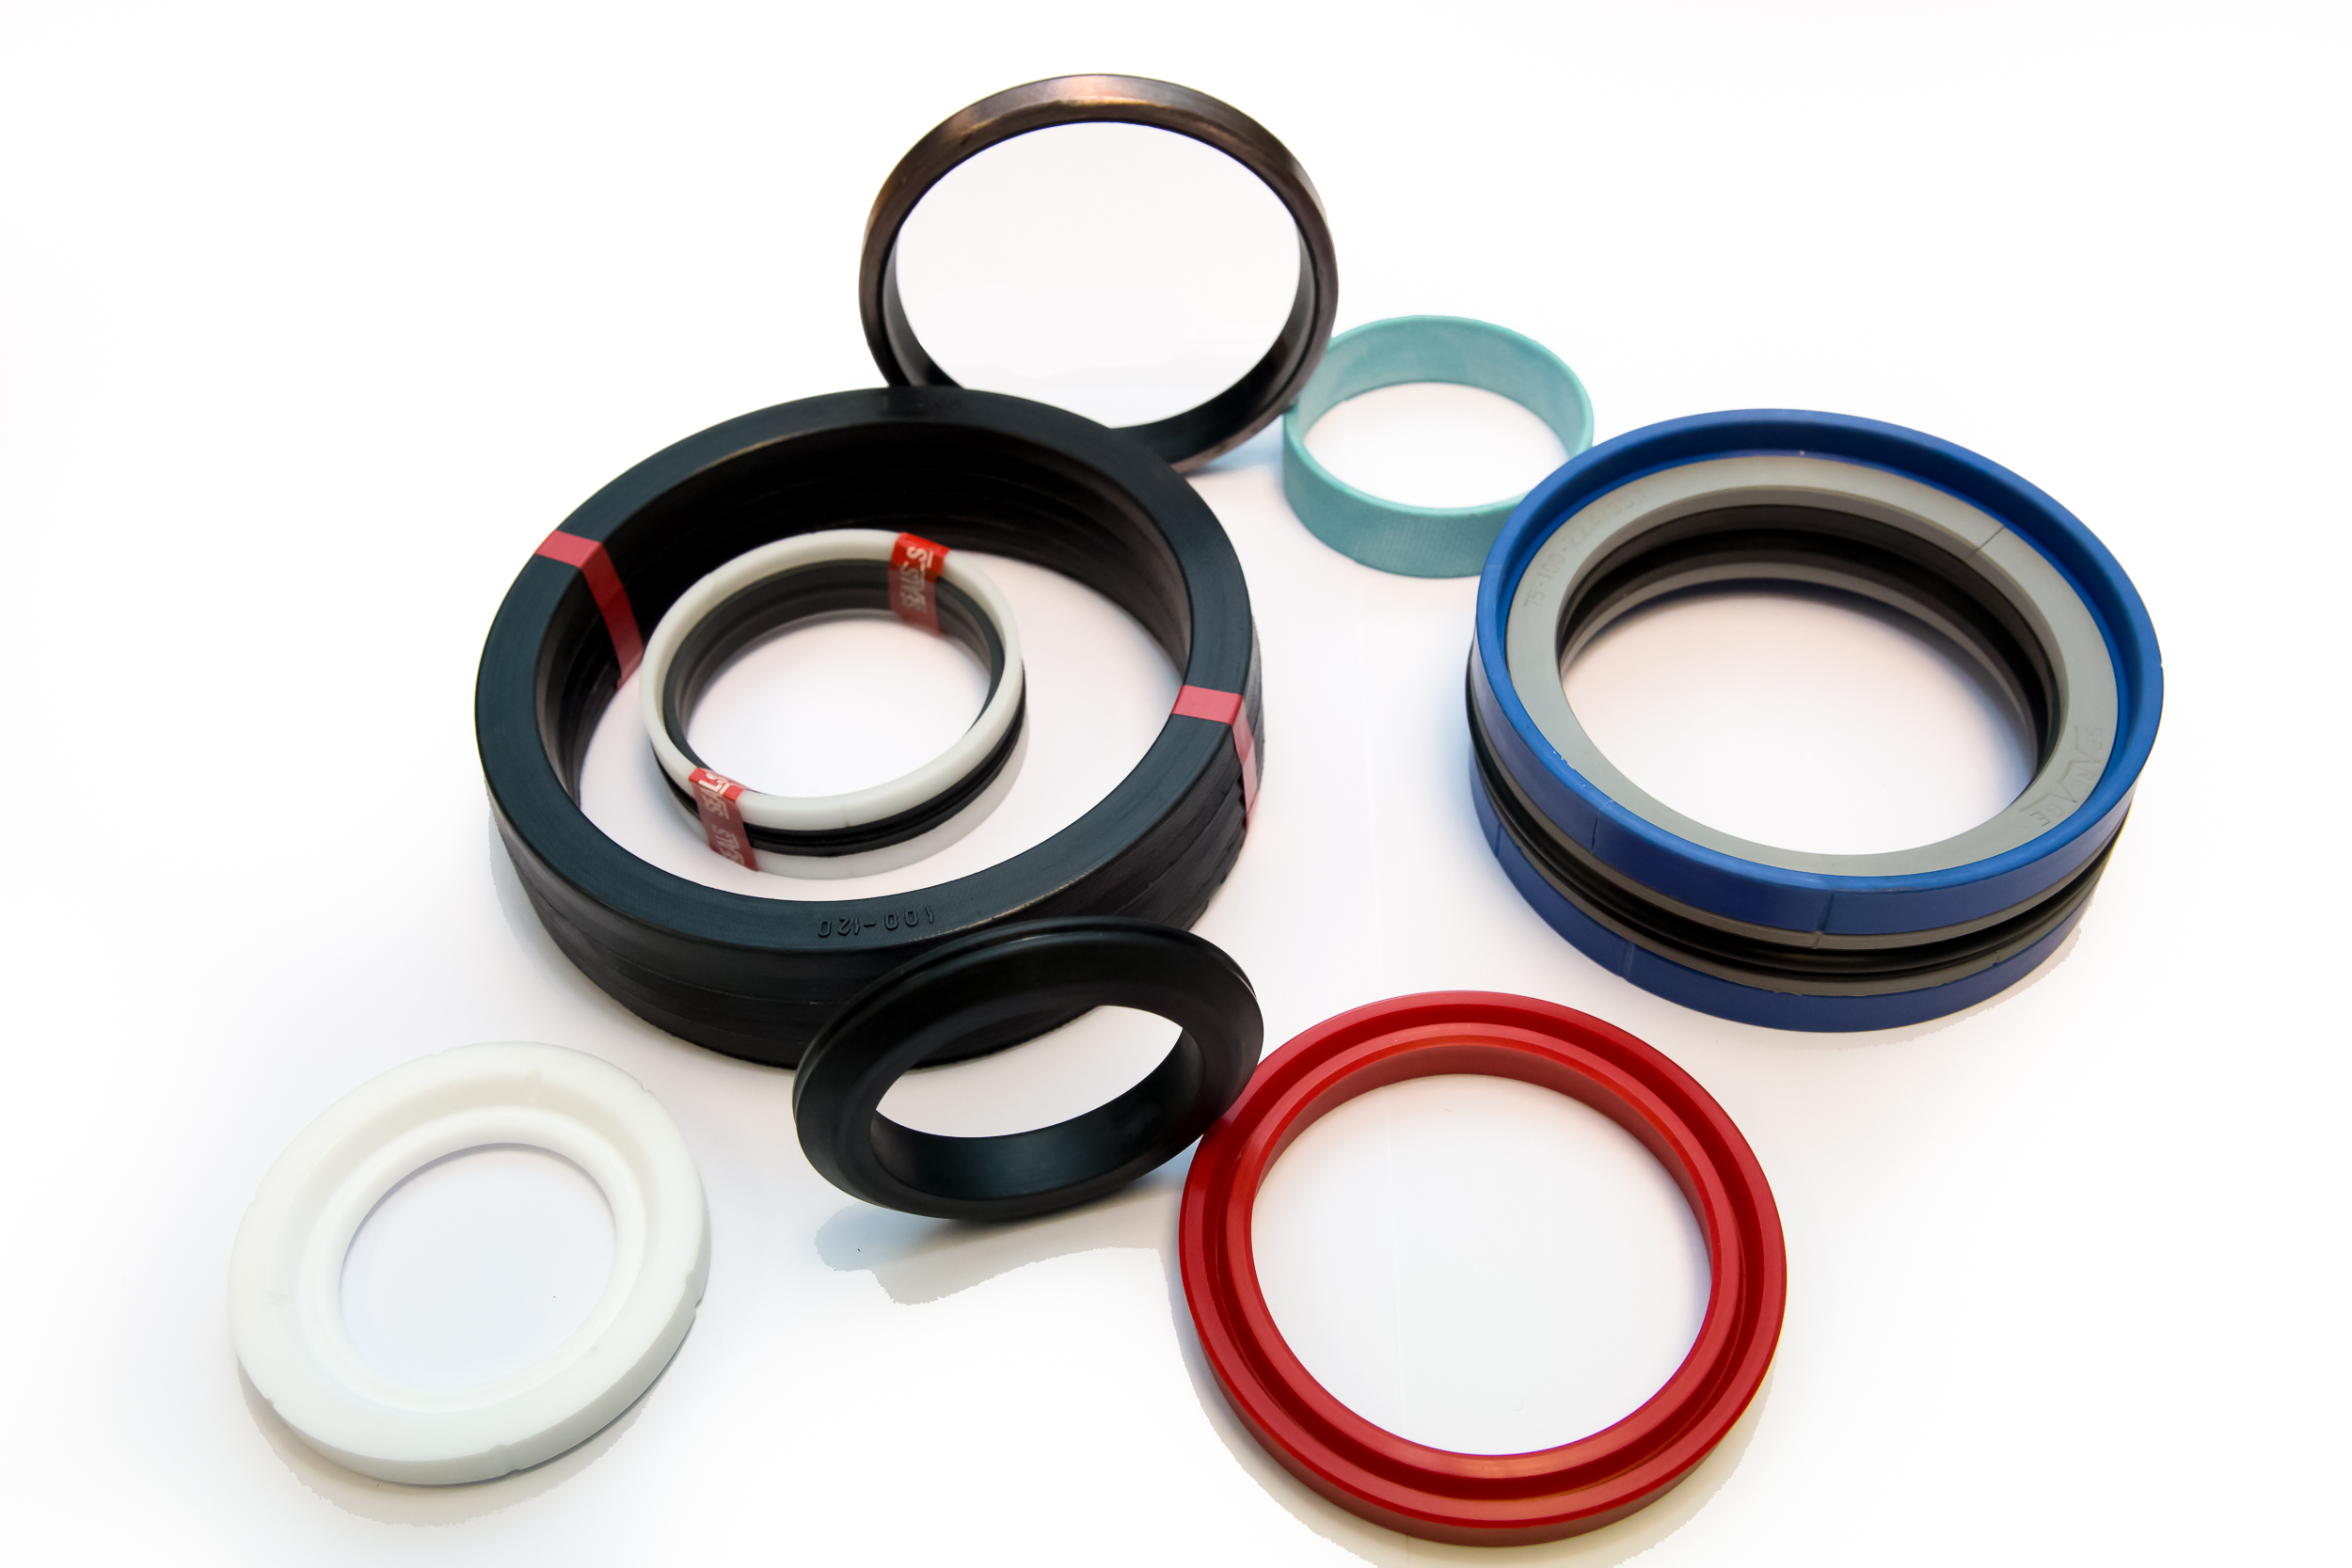 Hydraulic seals and pneumatic seals | UK Seals and Polymers Ltd